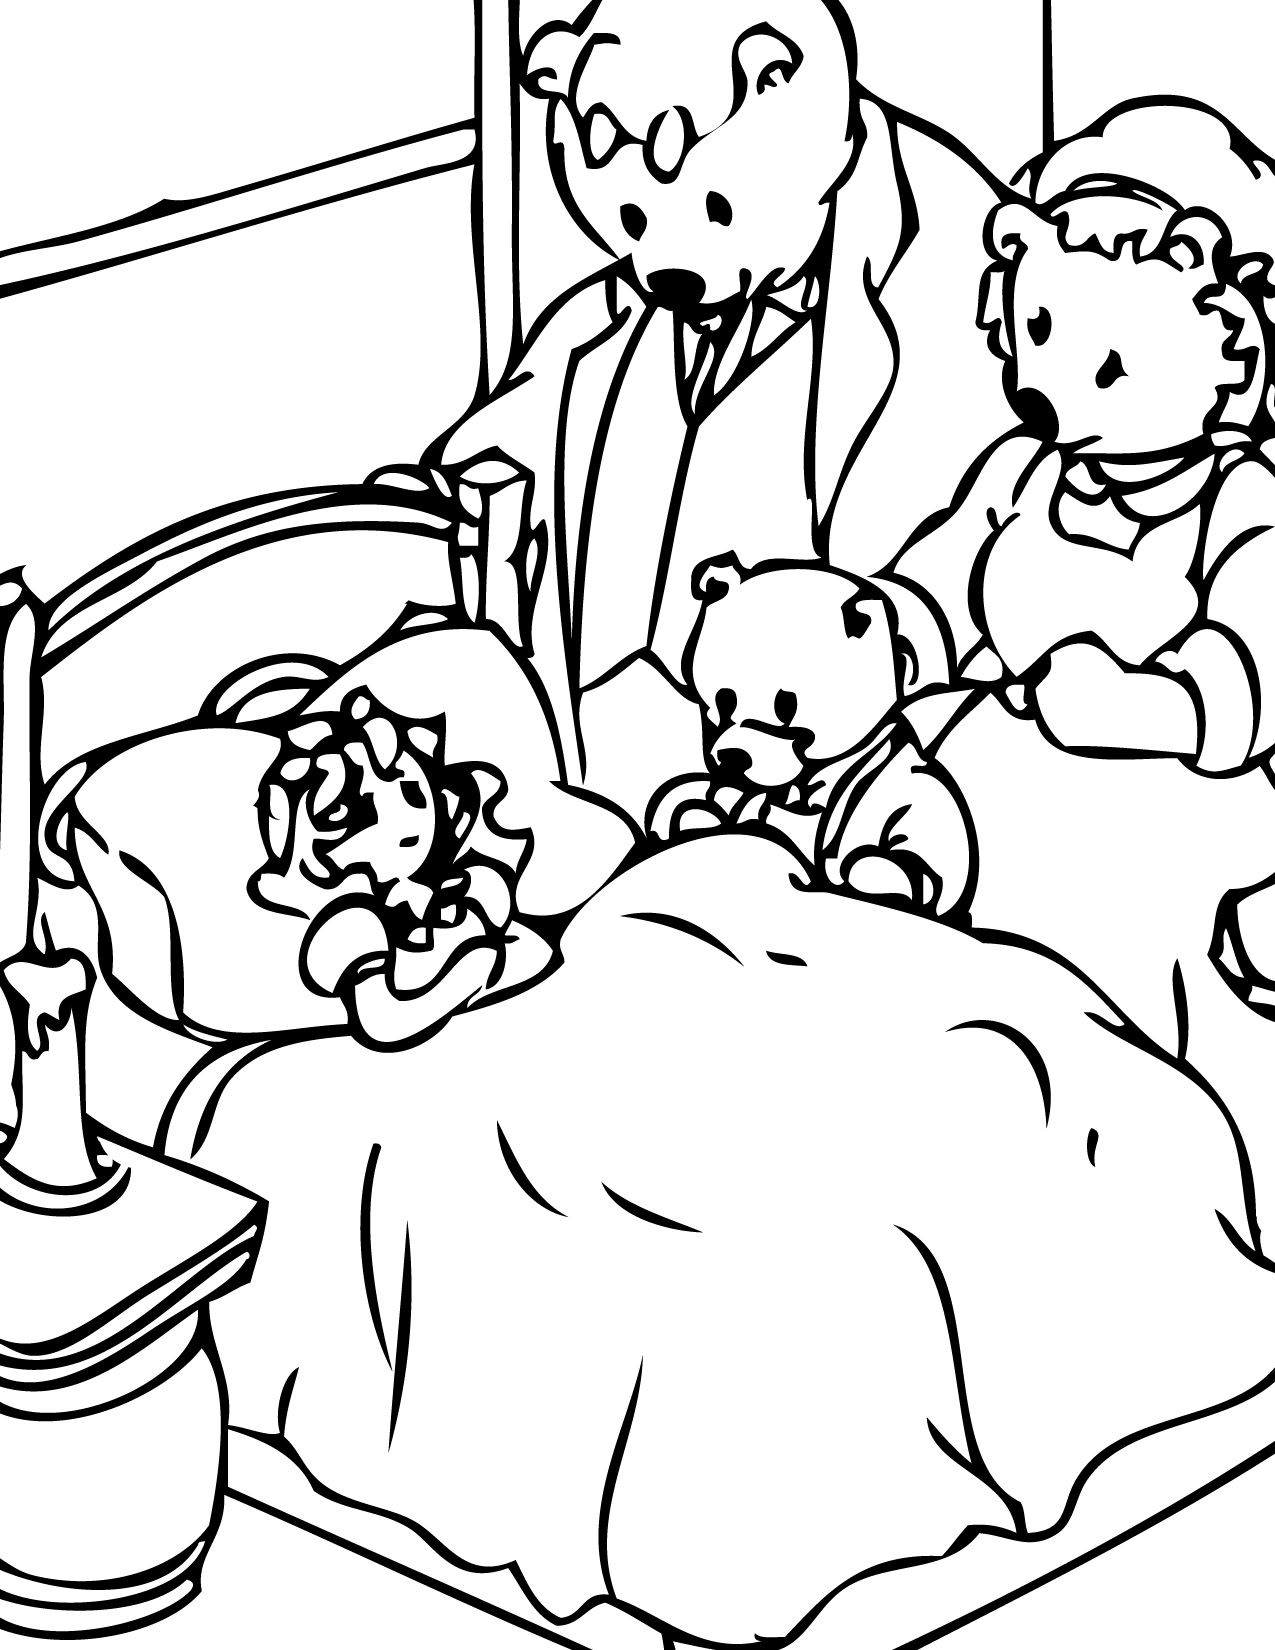 goldilocks and the three bears coloring pages Goldilocks and the Three Bears Coloring Page   Handipoints | Tools  goldilocks and the three bears coloring pages